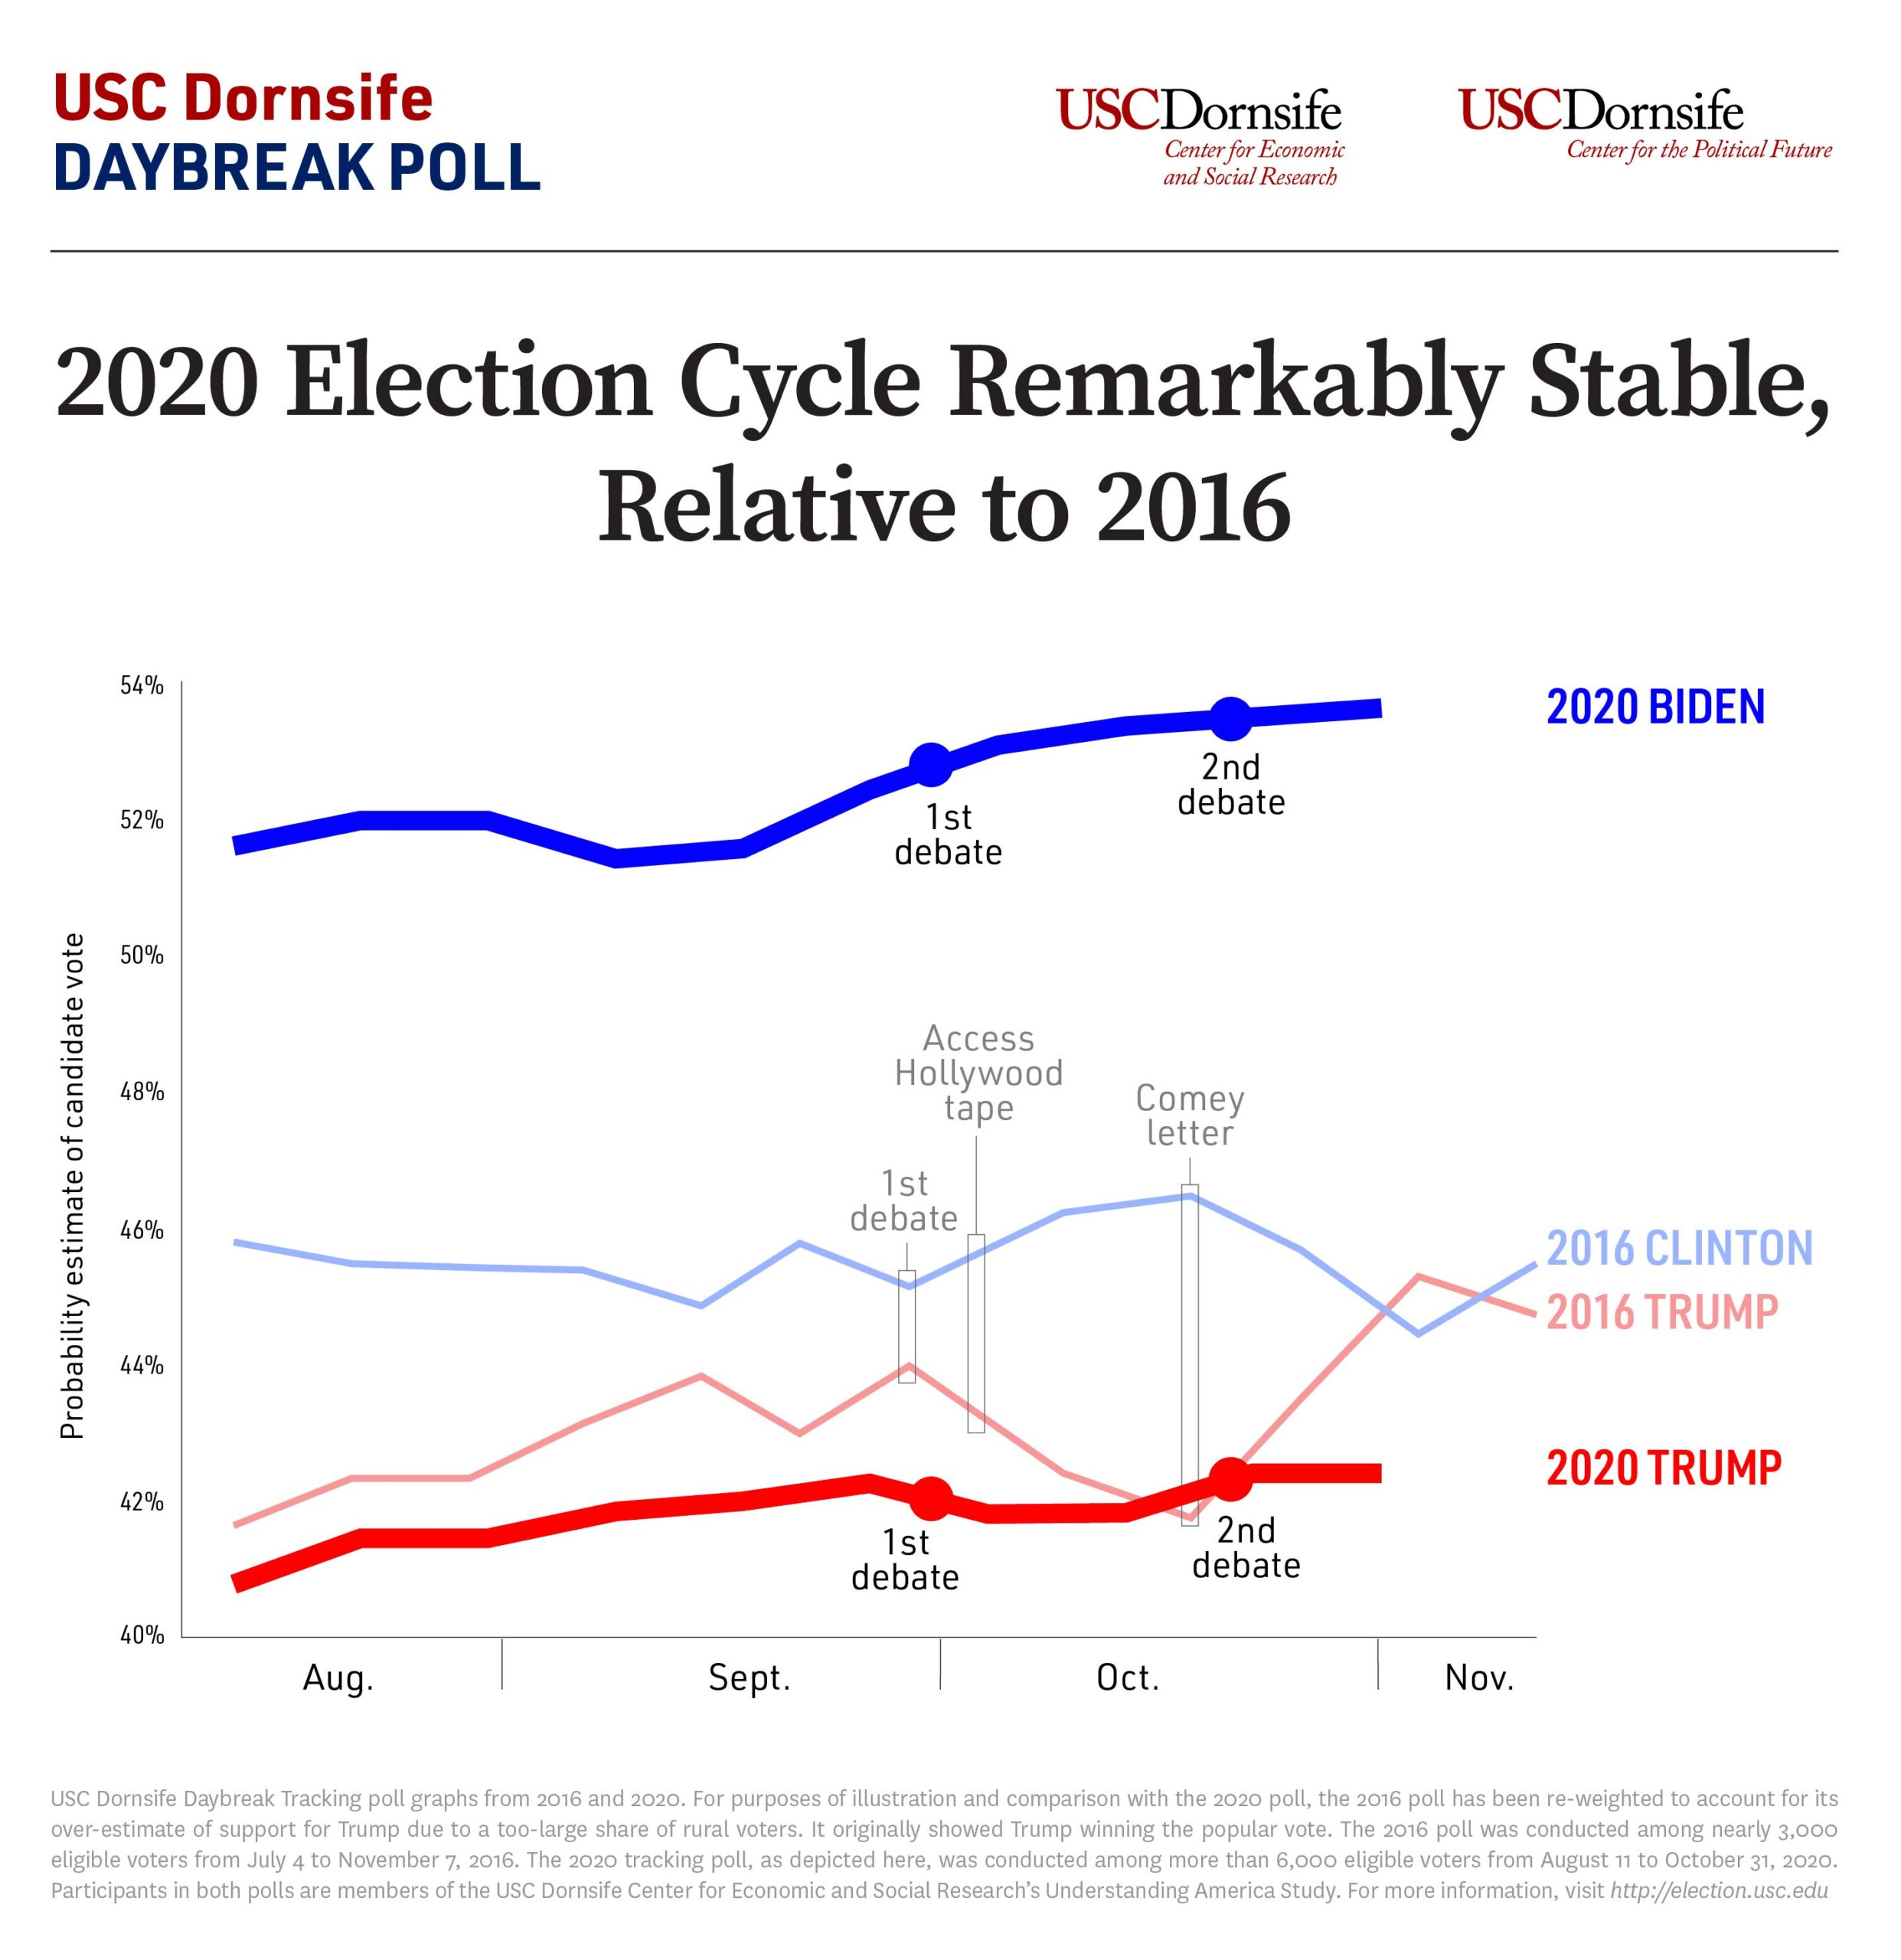 Final USC Dornsife Daybreak Poll: 2020 Election Cycle Remarkably Stable